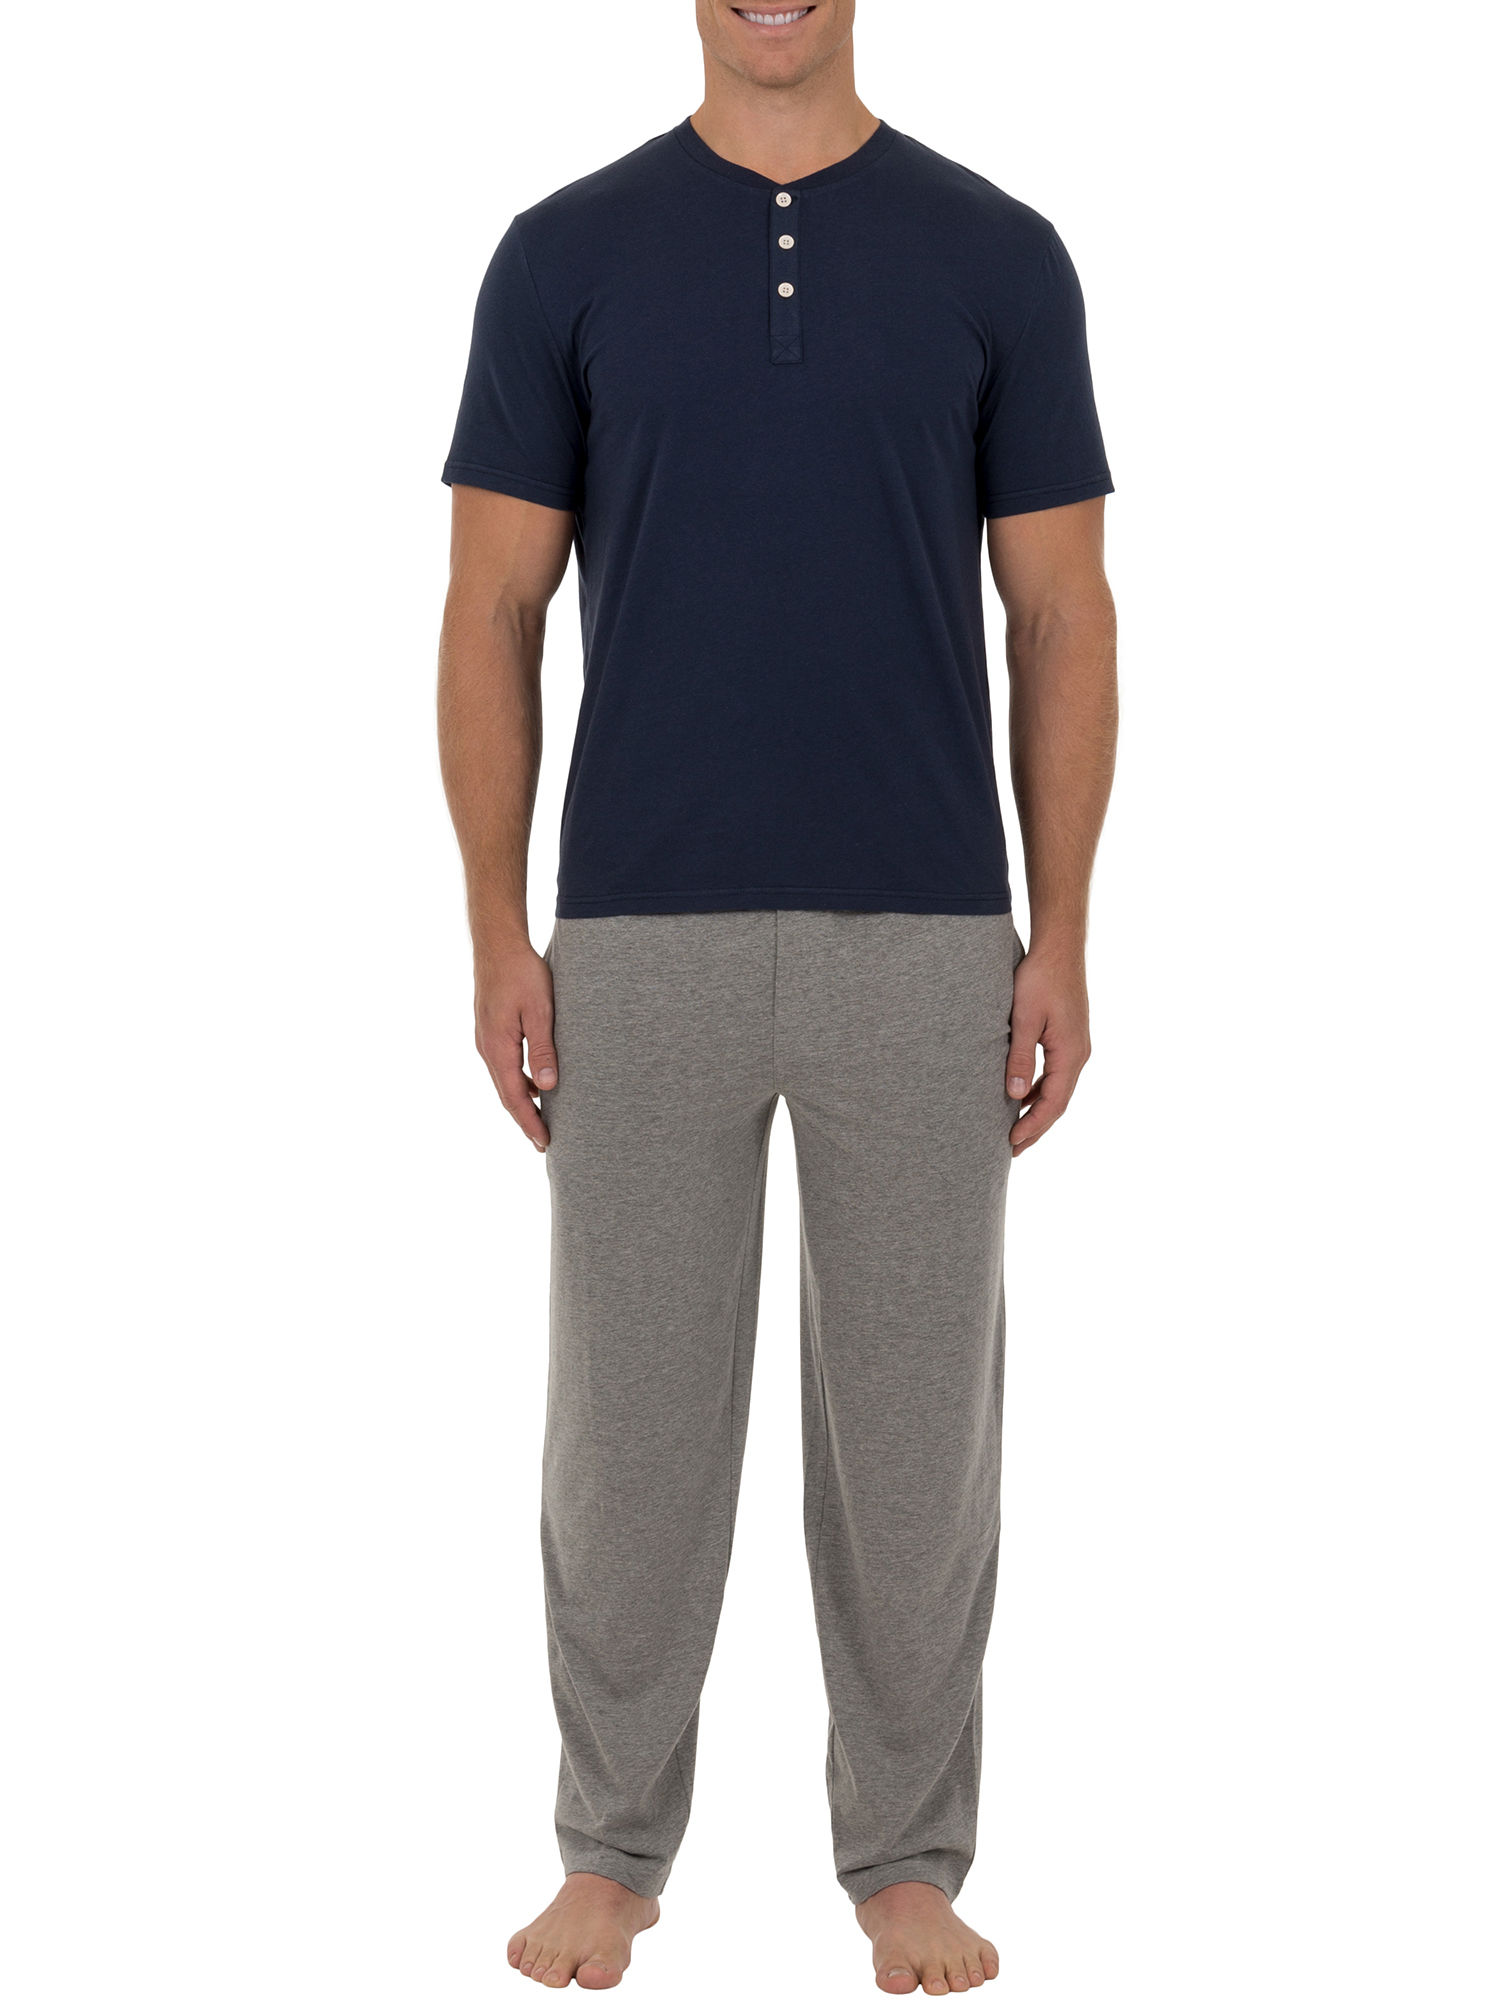 Fruit of the Loom Men's Big Size Jersey knit Top and Pant 2 piece Set